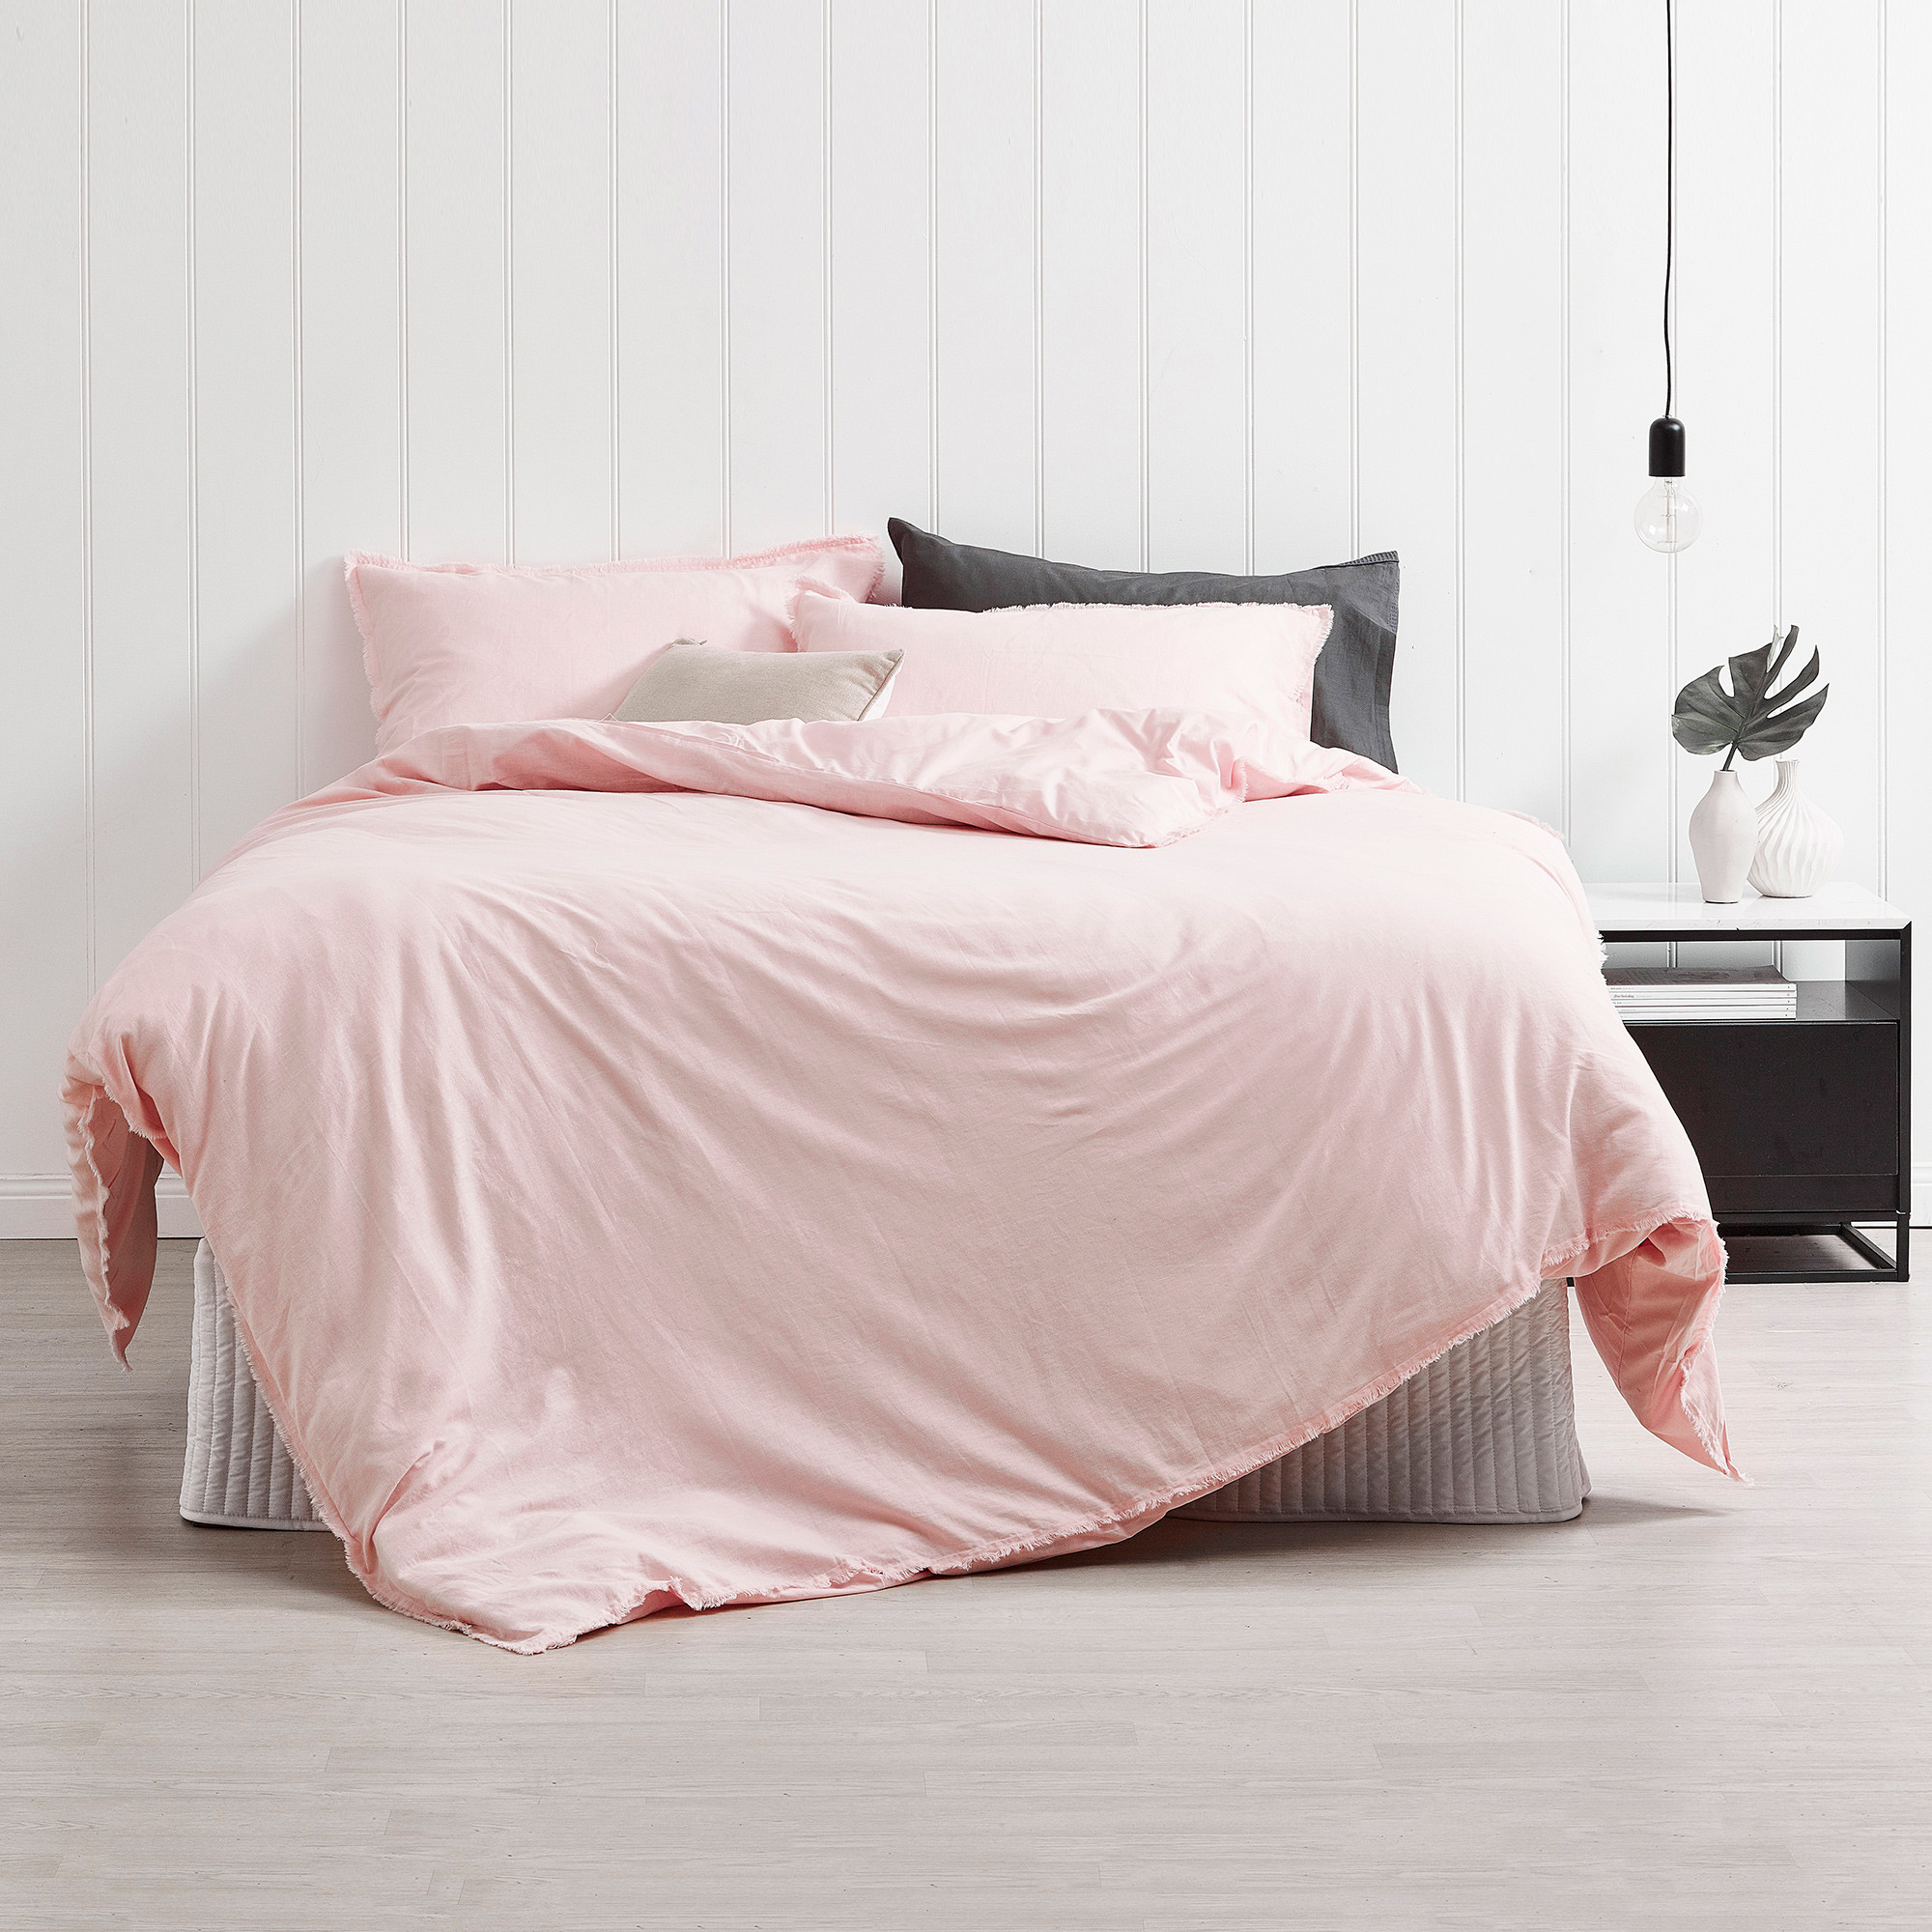 today bedding flannel free miller cover shipping blush product madison cotton bath overstock park duvet set printed